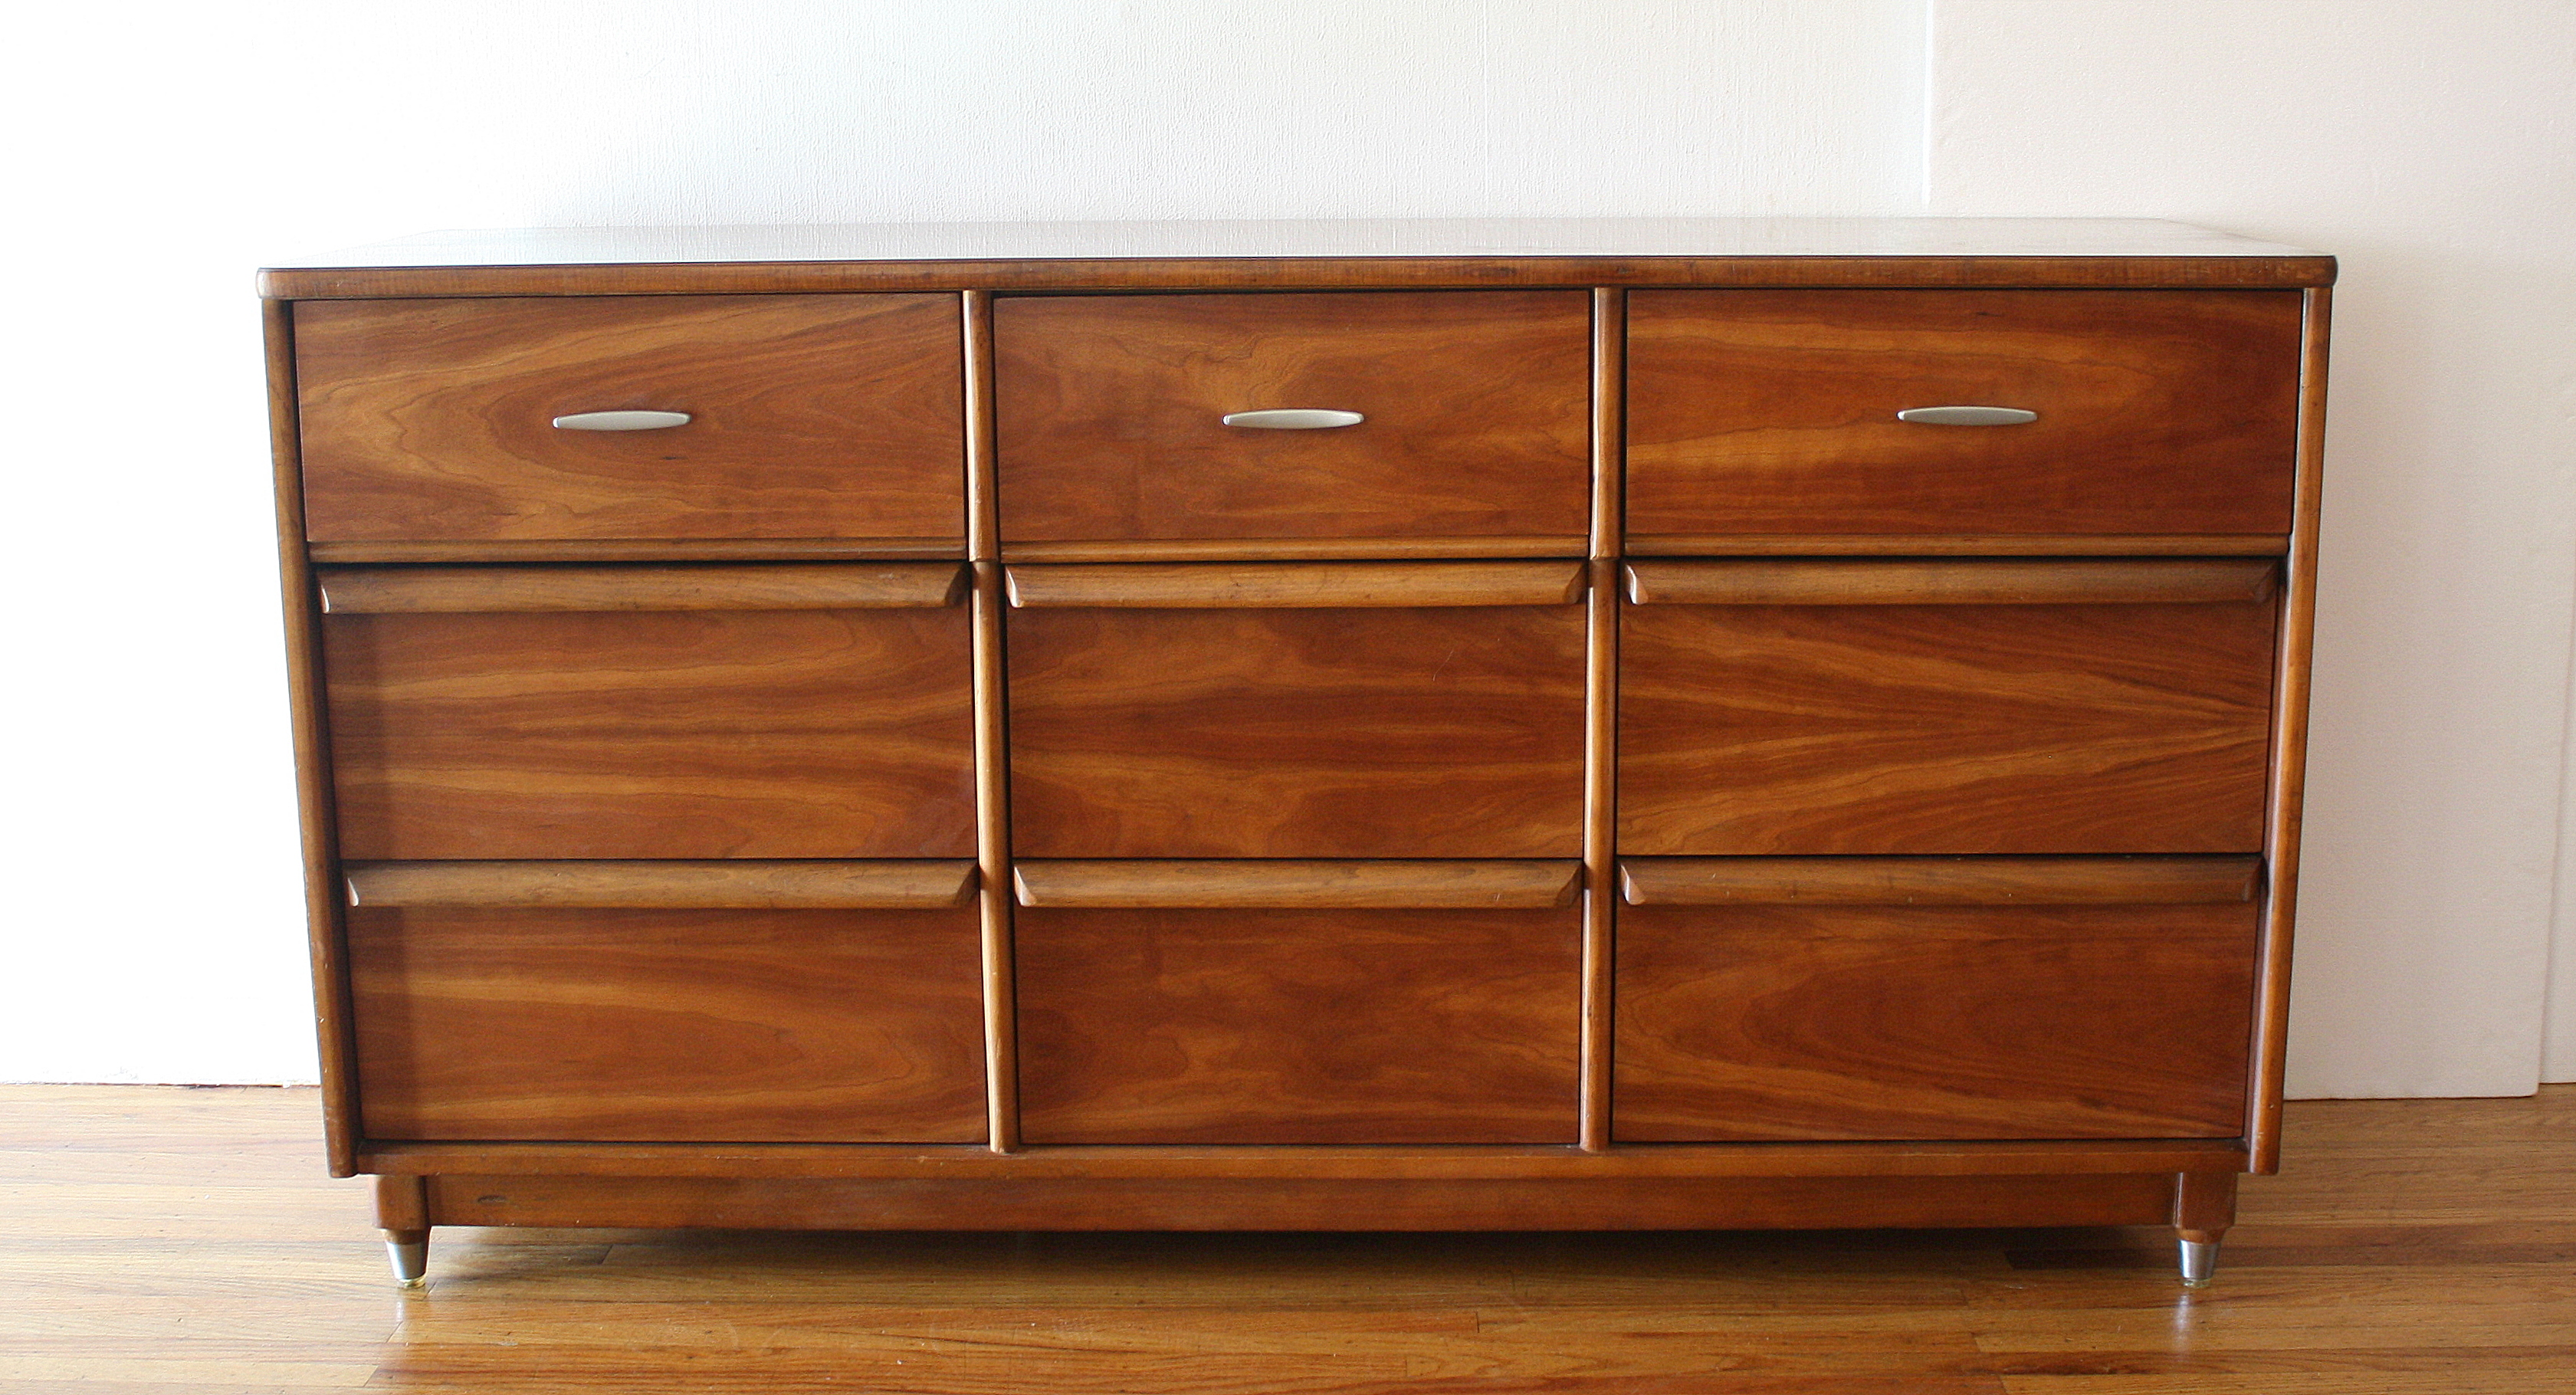 mcm low dresser with lucite tipped tapered legs 1.JPG